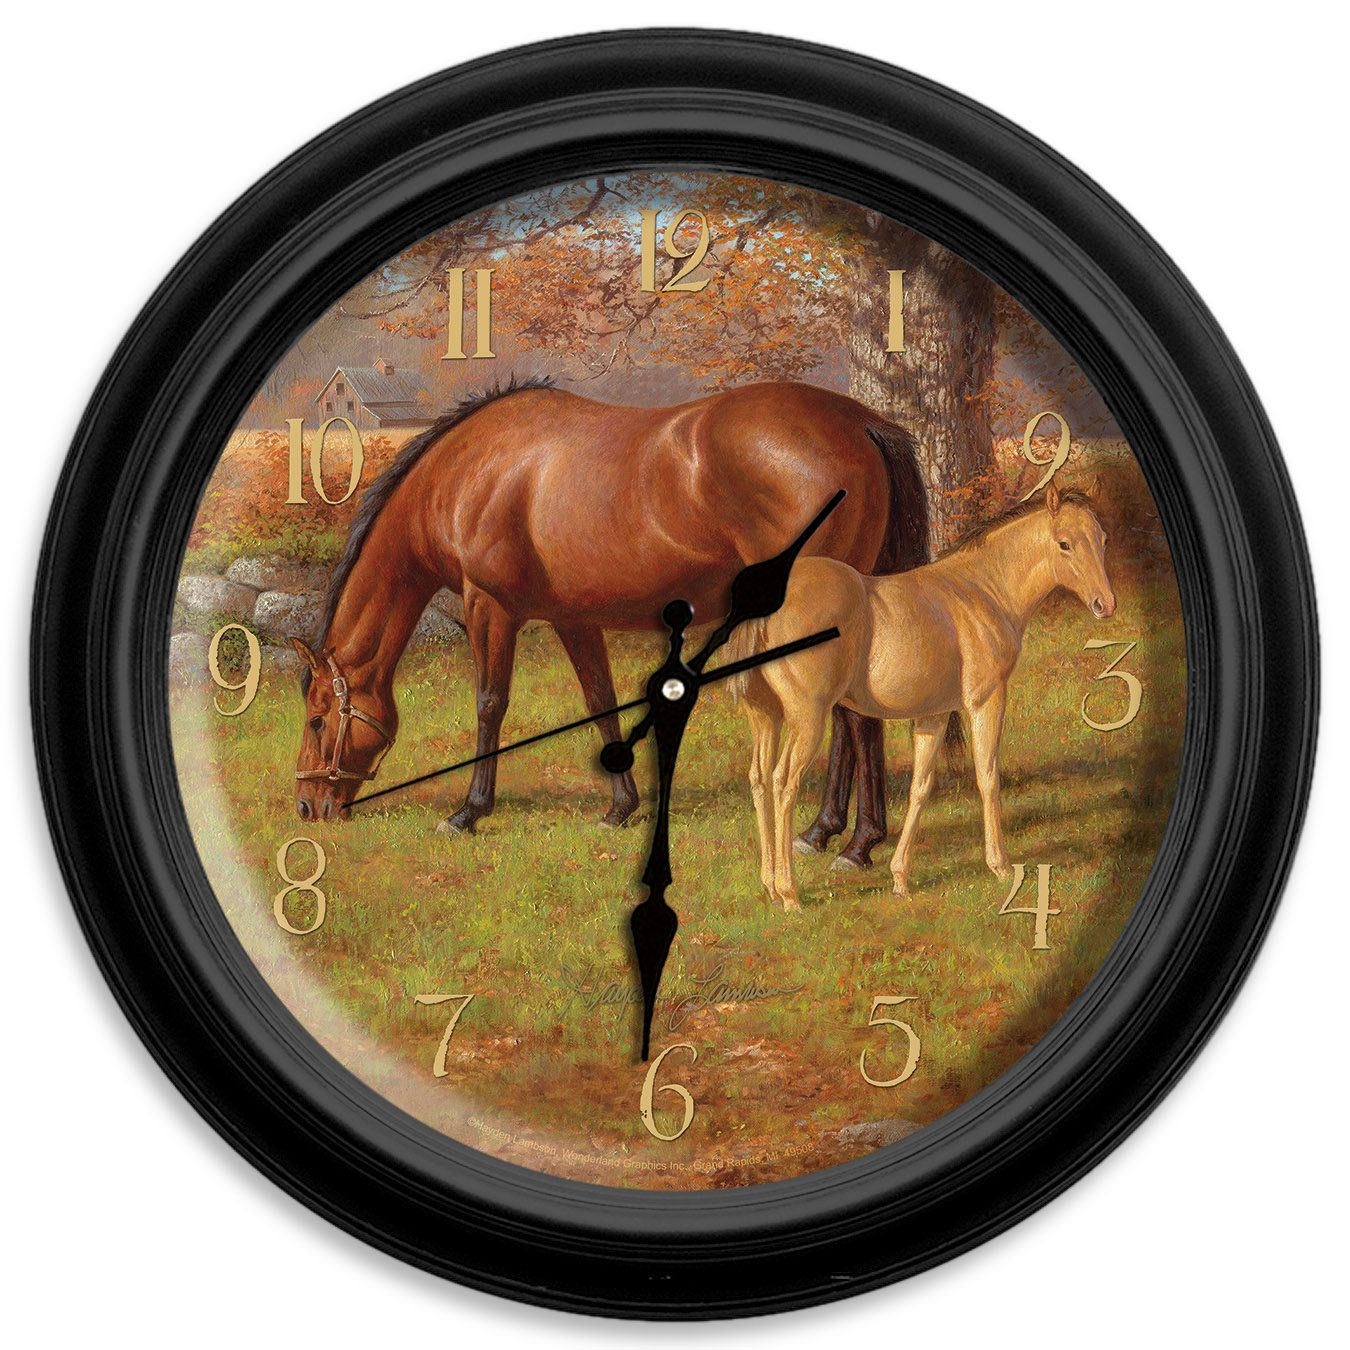 Classic wildlife 16 a proud heritage wall clock products classic wildlife 16 a proud heritage wall clock amipublicfo Image collections